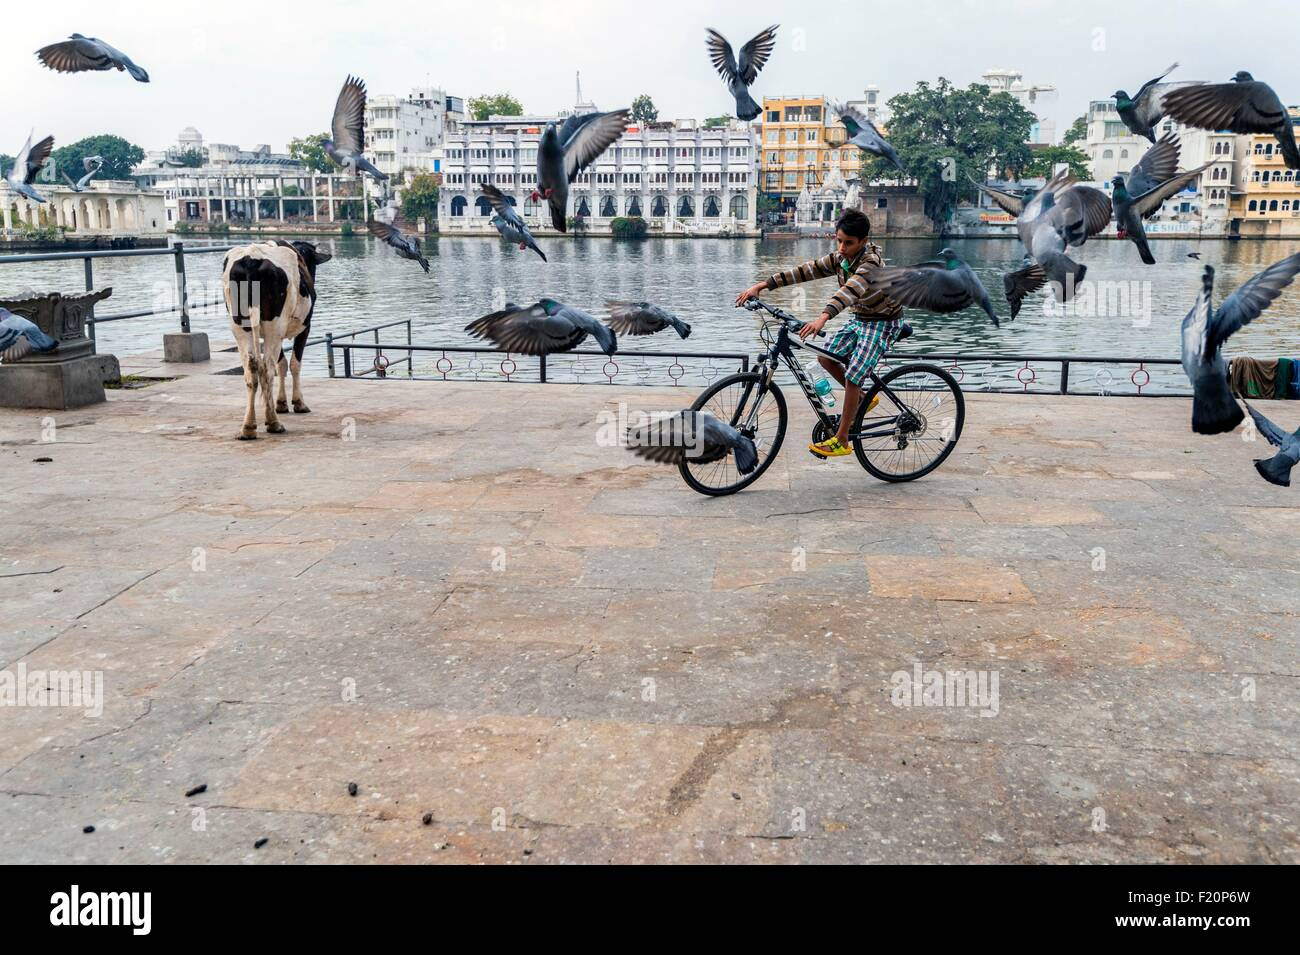 India, Rajasthan state, Udaipur, the ghats of Lake Pichola - Stock Image